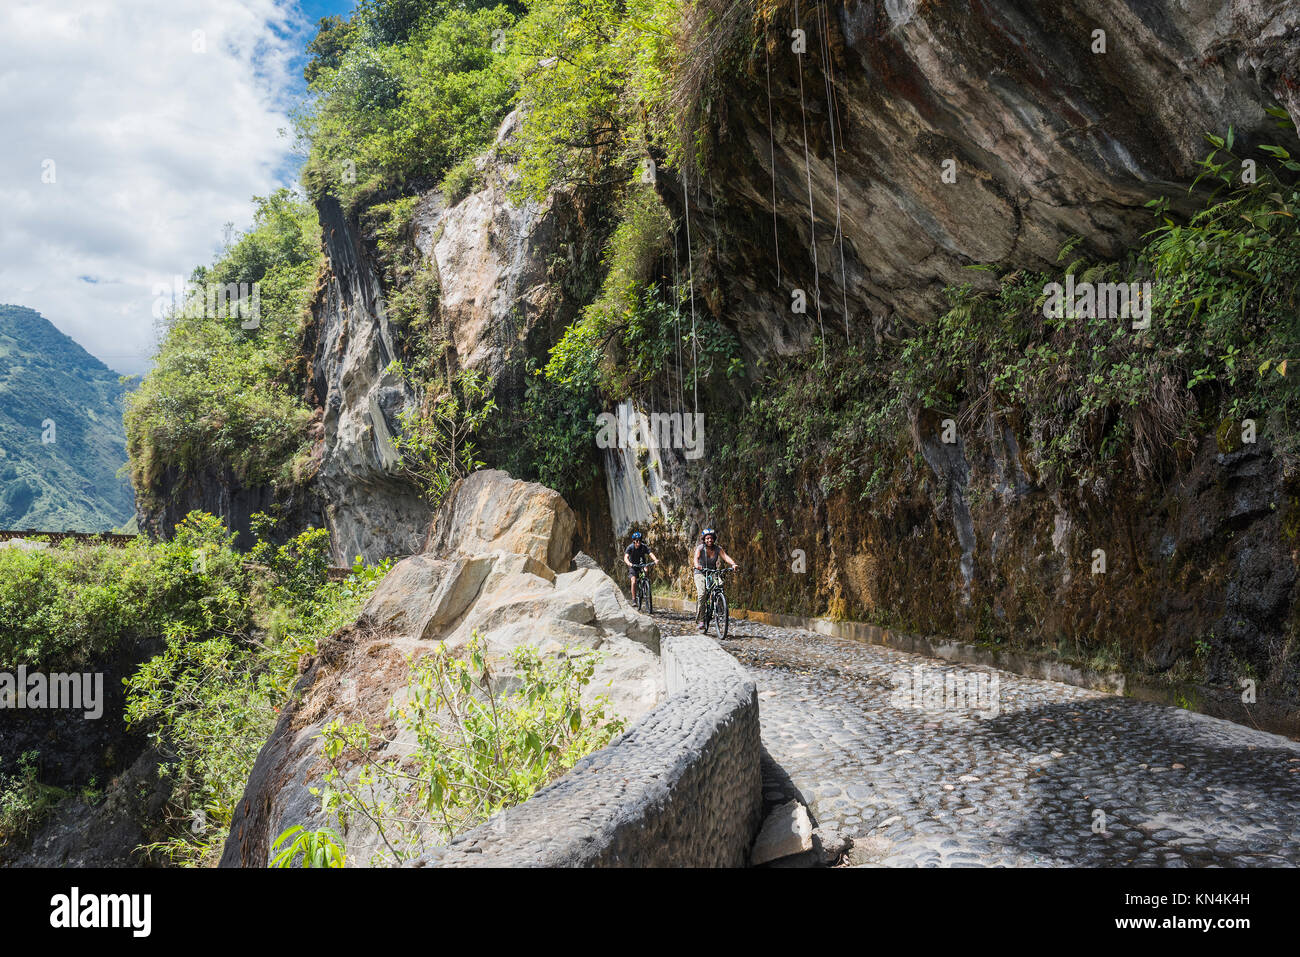 Cascades route, Banos - Puyo, Ecuador - December 8, 2017: Tourists ride bicycles along the Waterfalls Road over - Stock Image